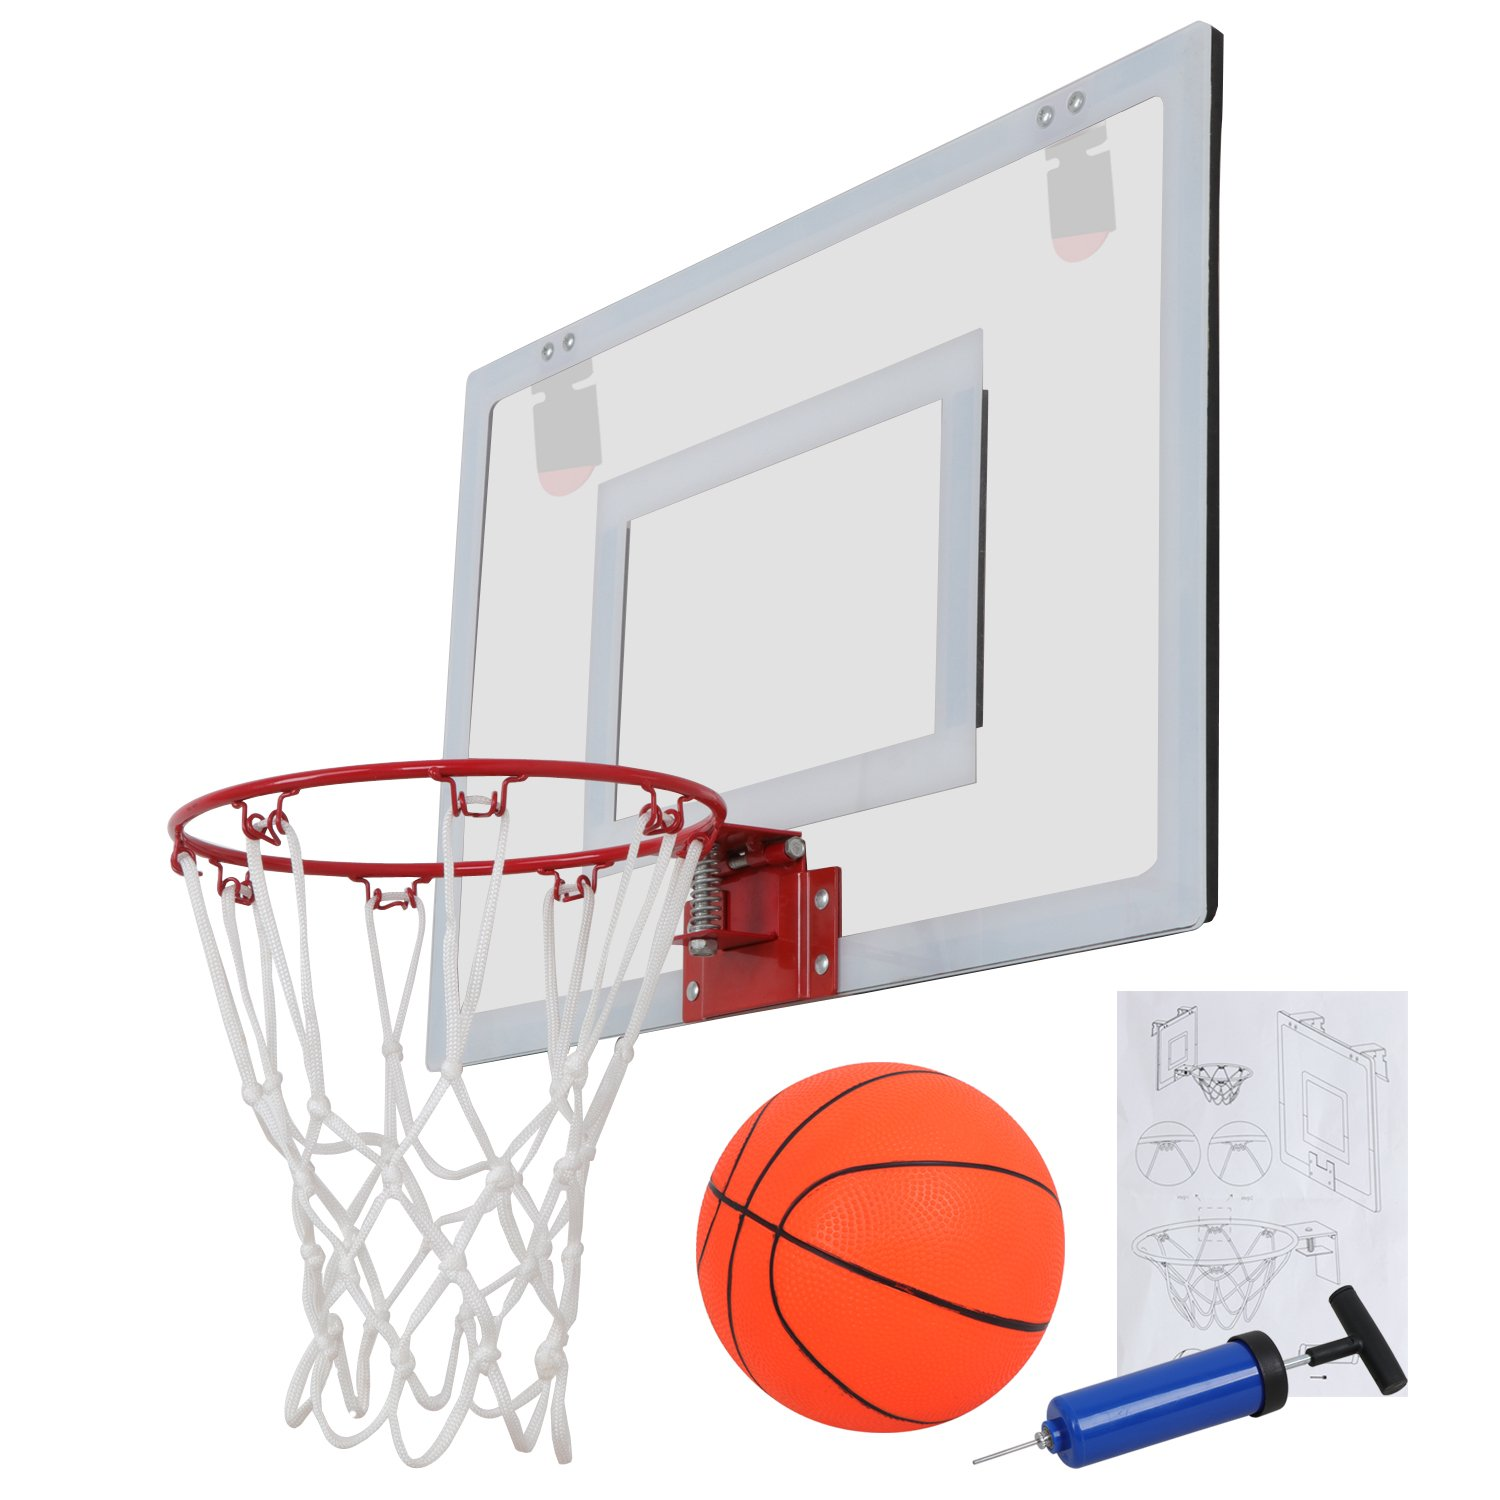 F2C Over The Door Wall Mount Indoor 9.5'' Mini Basketball Hoop Net Goal Set with 5.5'' Ball, Ball Pump, 23''X 16'' Backboard Basketball Toy Game Home Office Decor for Kids Education Basketball Lovers